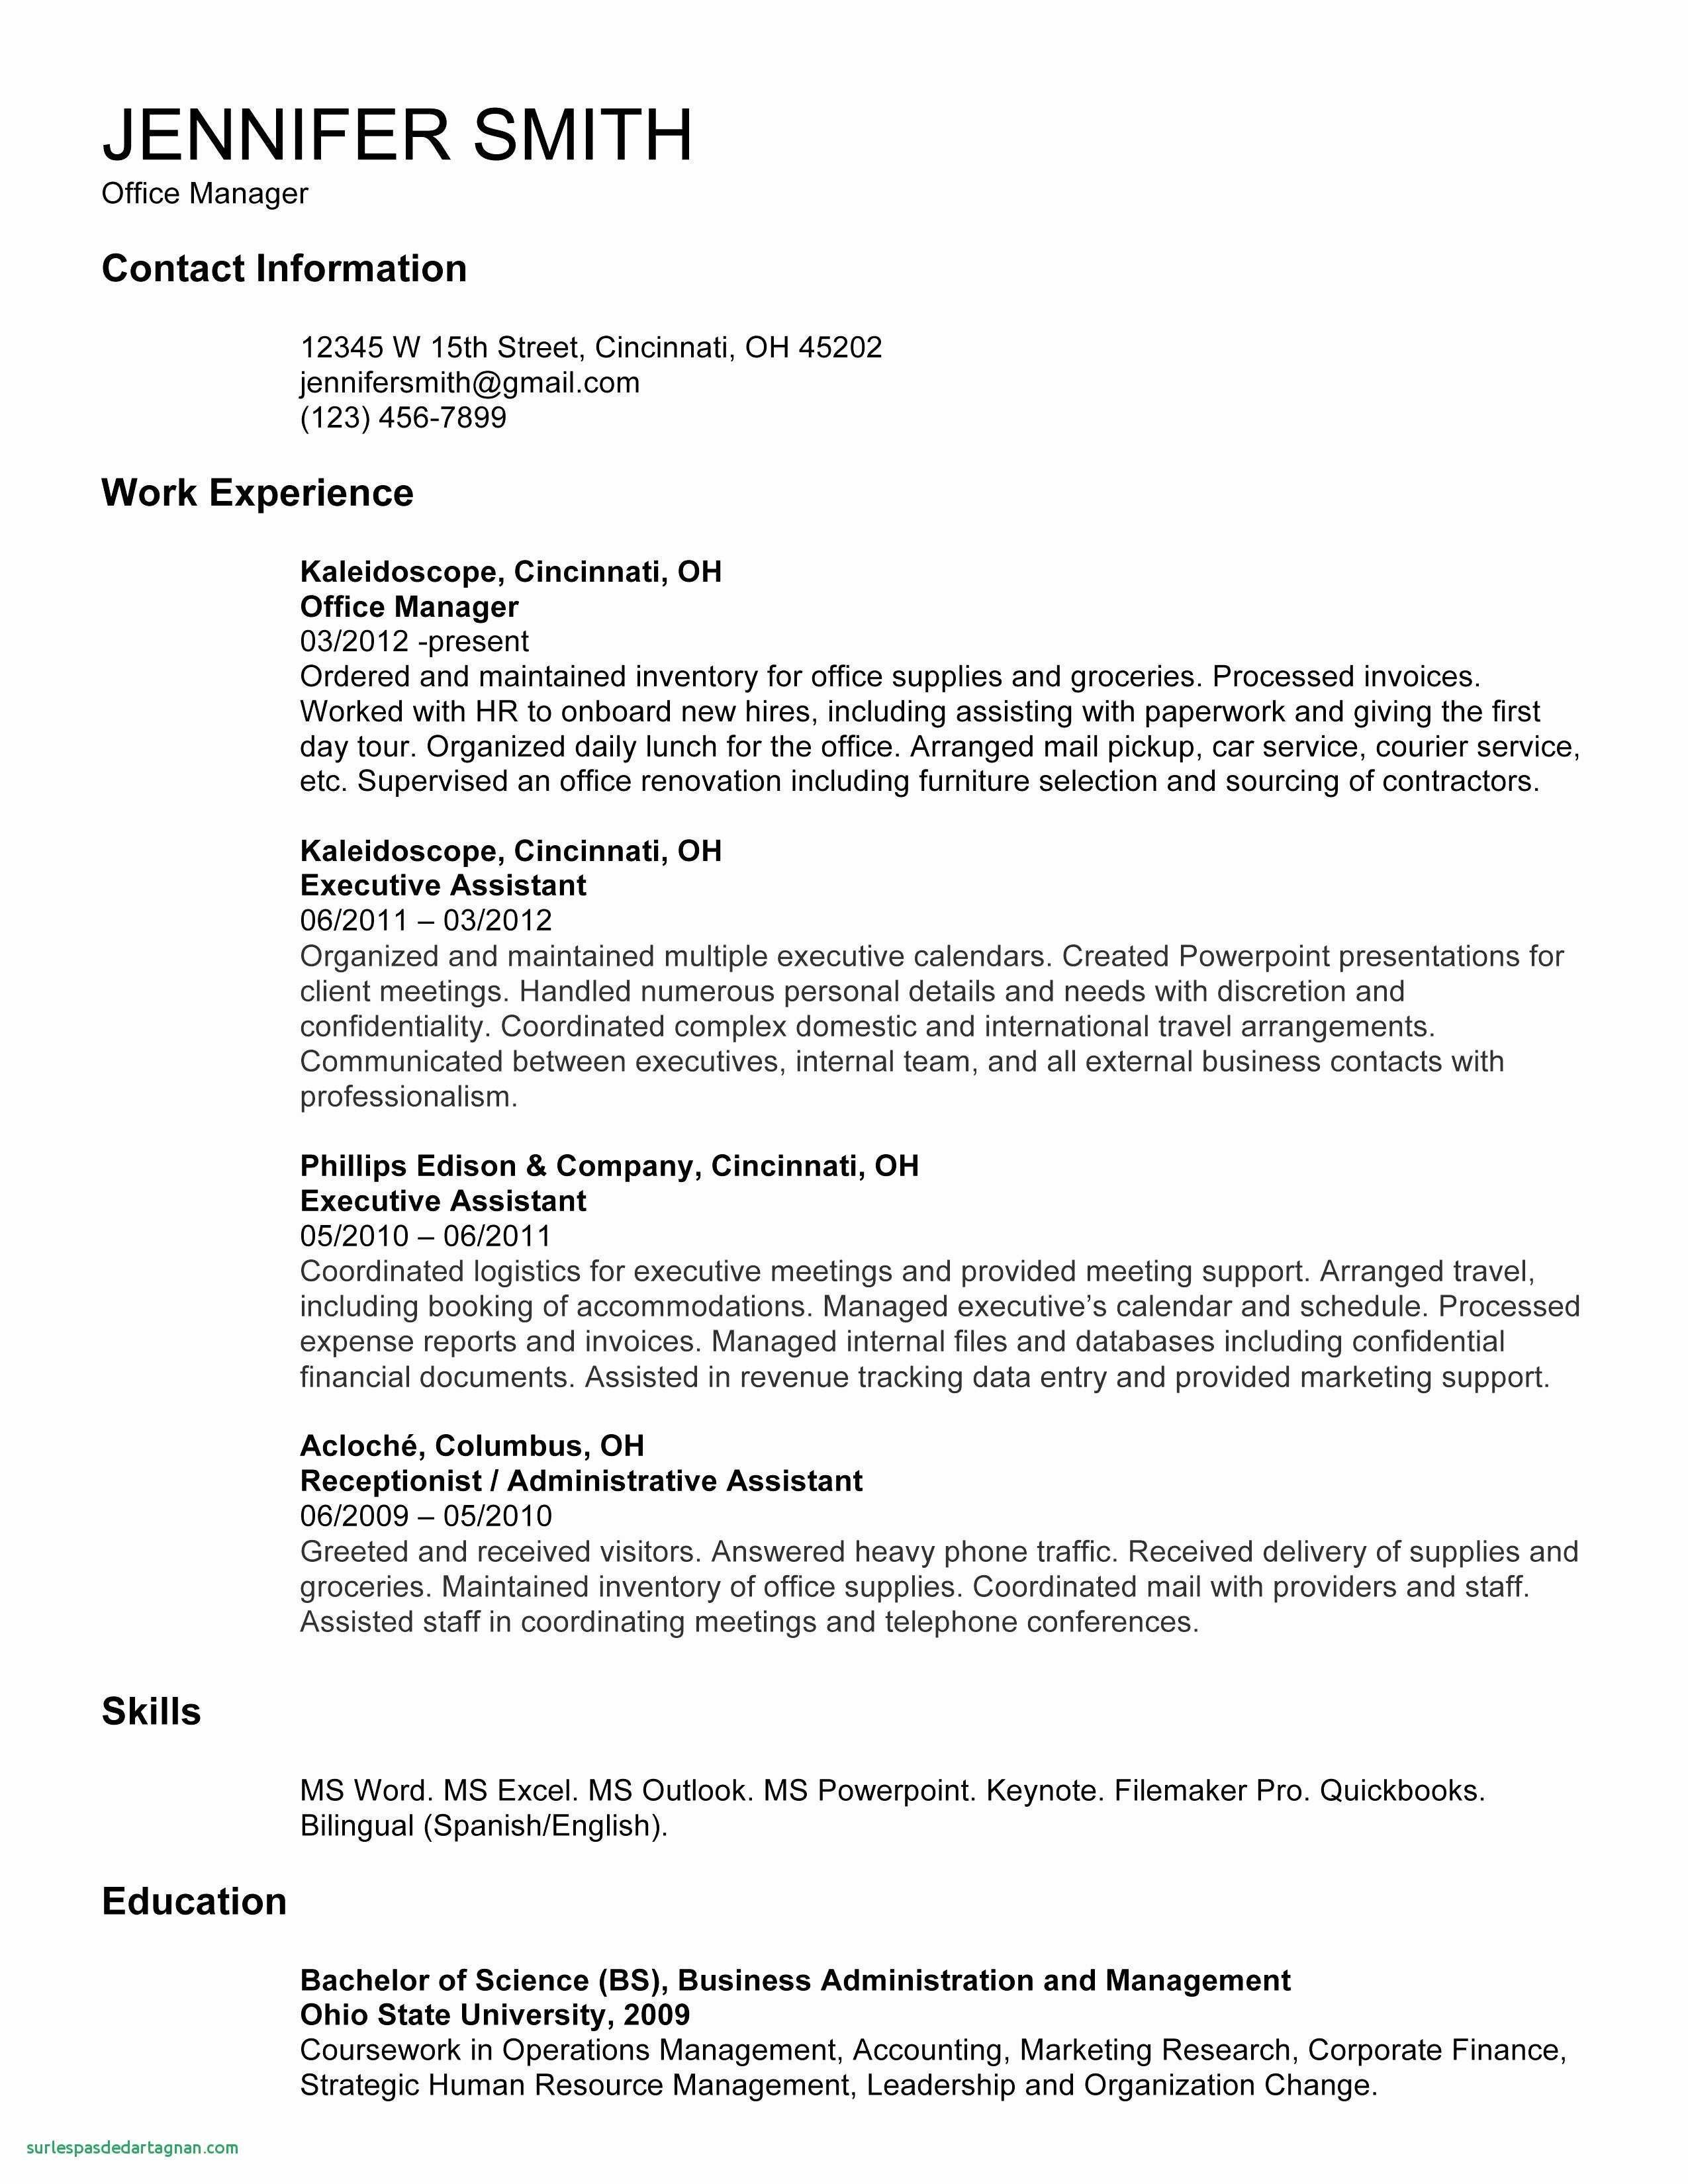 Vp Resume Template - Resume Template Download Free Unique ¢Ë†Å¡ Resume Template Download